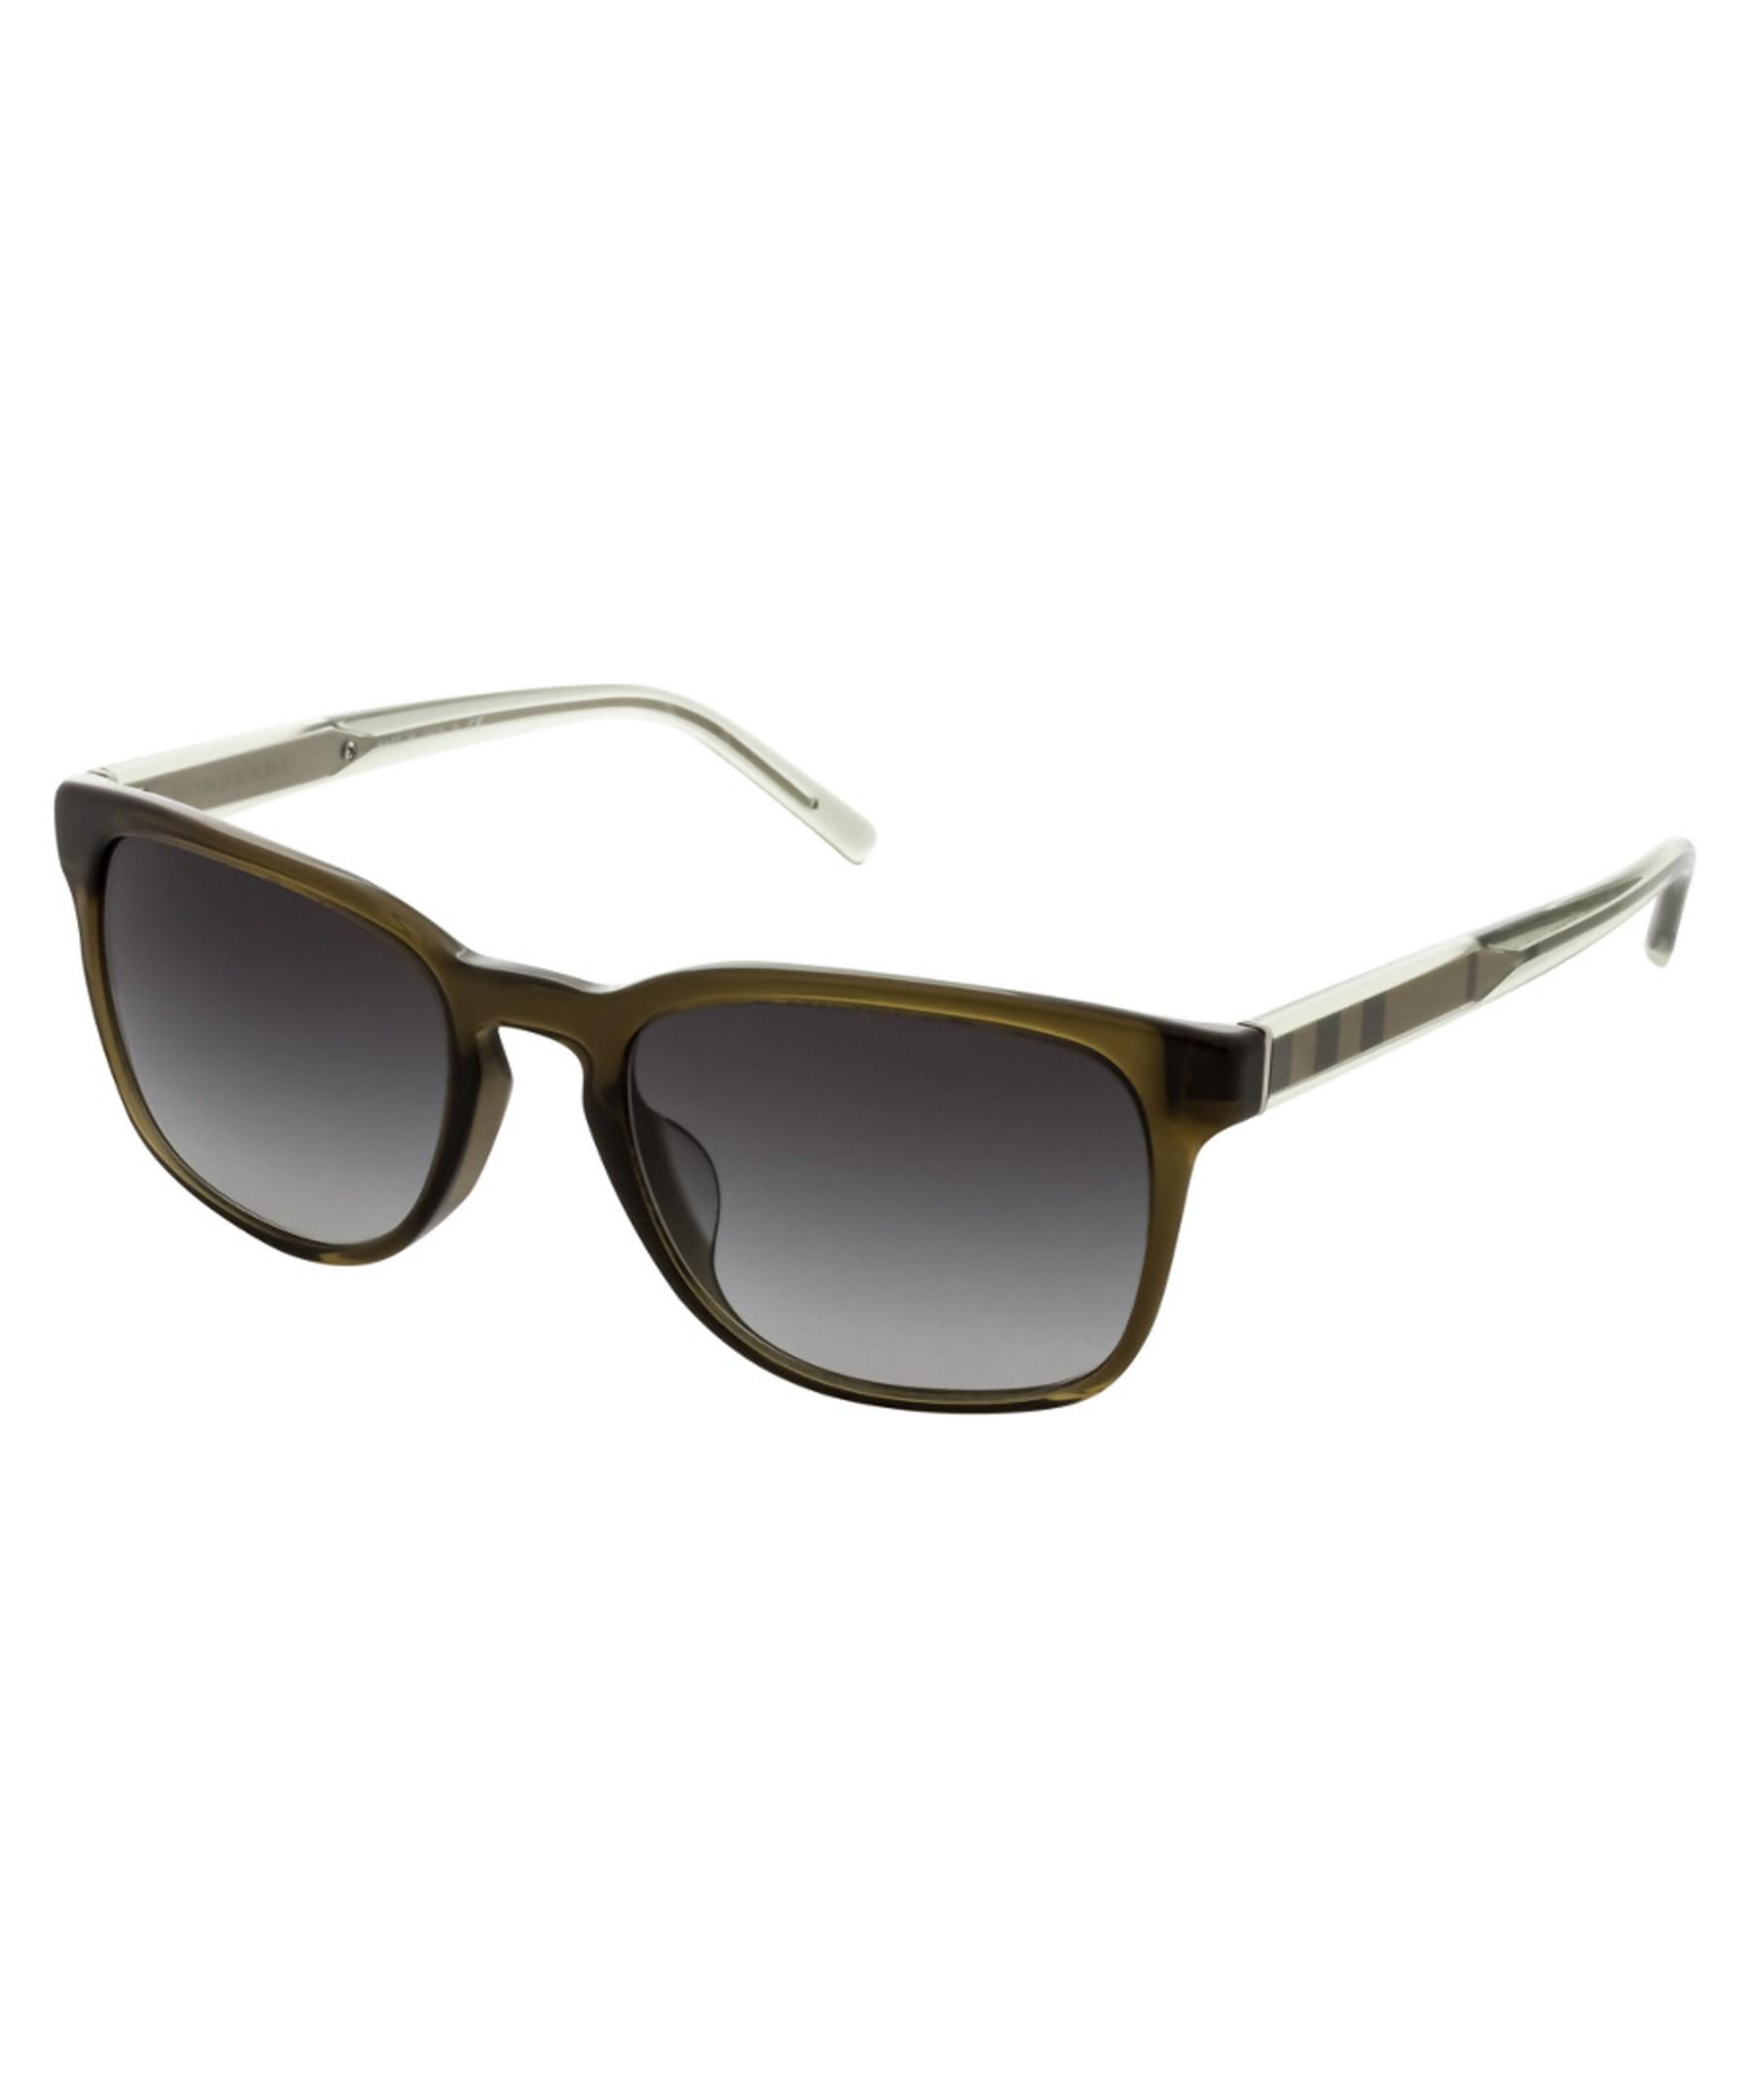 52ef3a50ba2 Lyst - Burberry Men s Be4222f 30108g Sunglasses in Green for Men